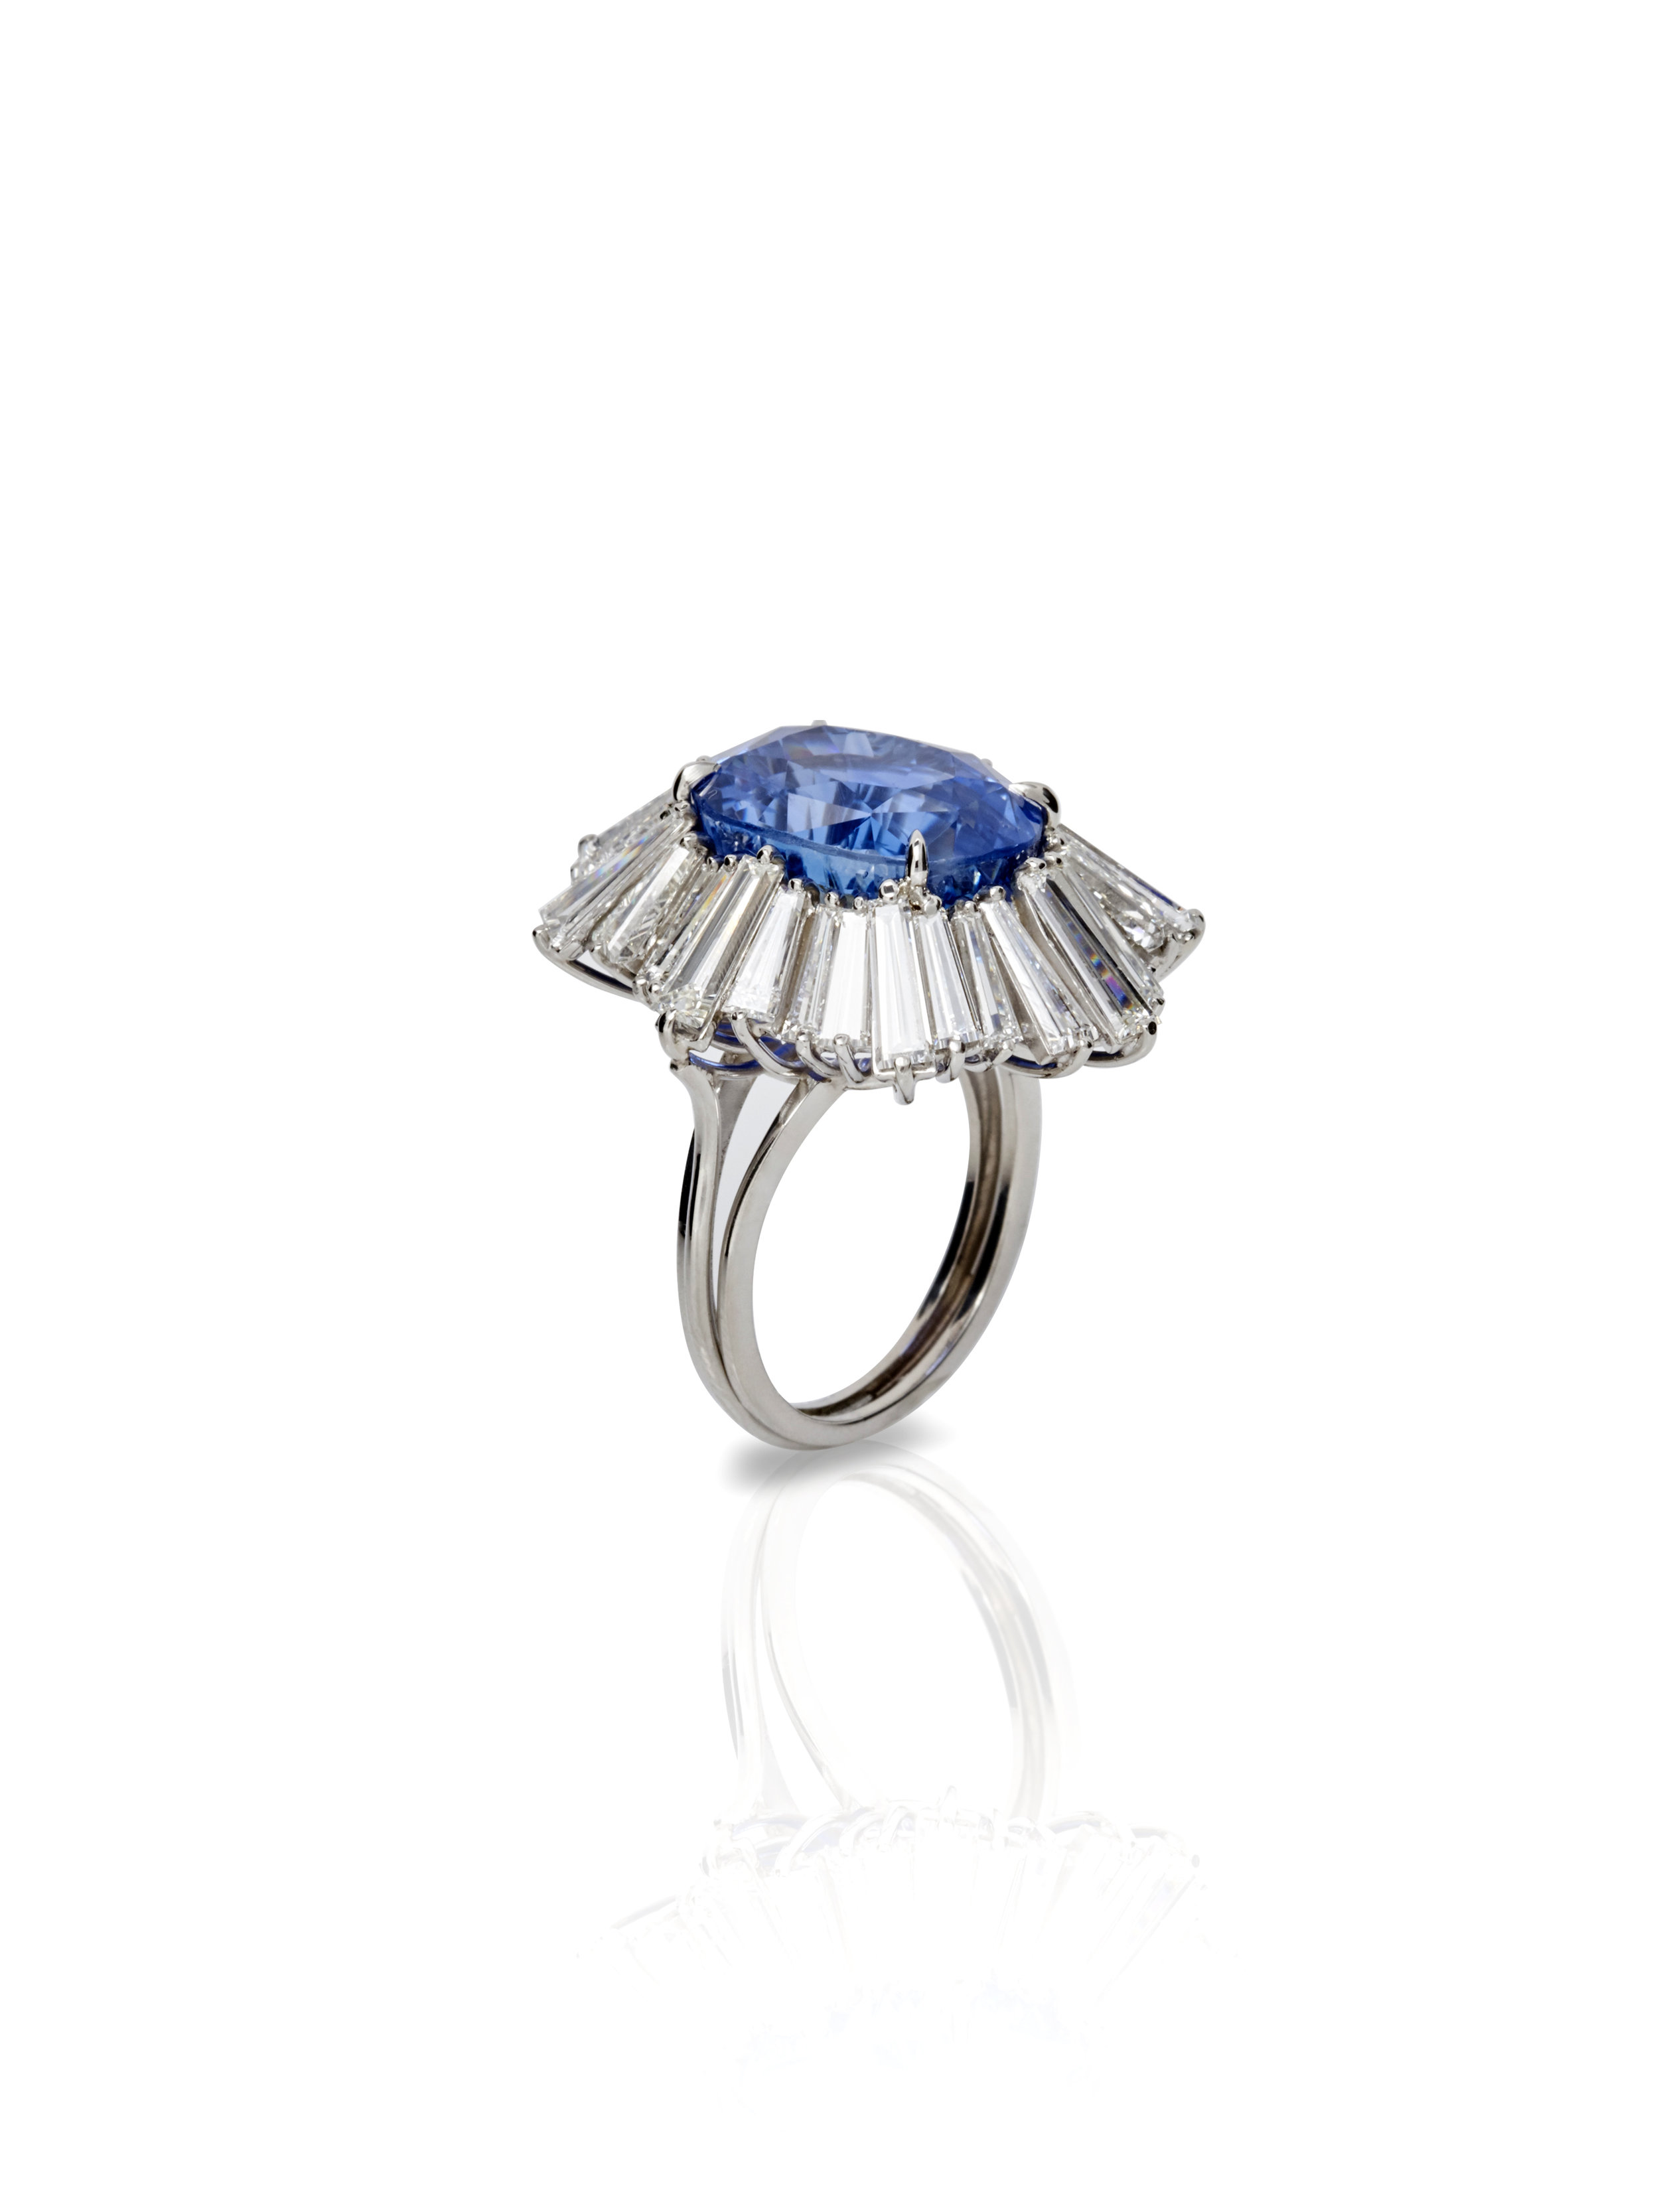 EYDIS SAPPHIRE RING   PLATINUM RING 8.0 CT OF DIAMONDS 19.75 CT OF SAPPHIRES      Contact for inquiry